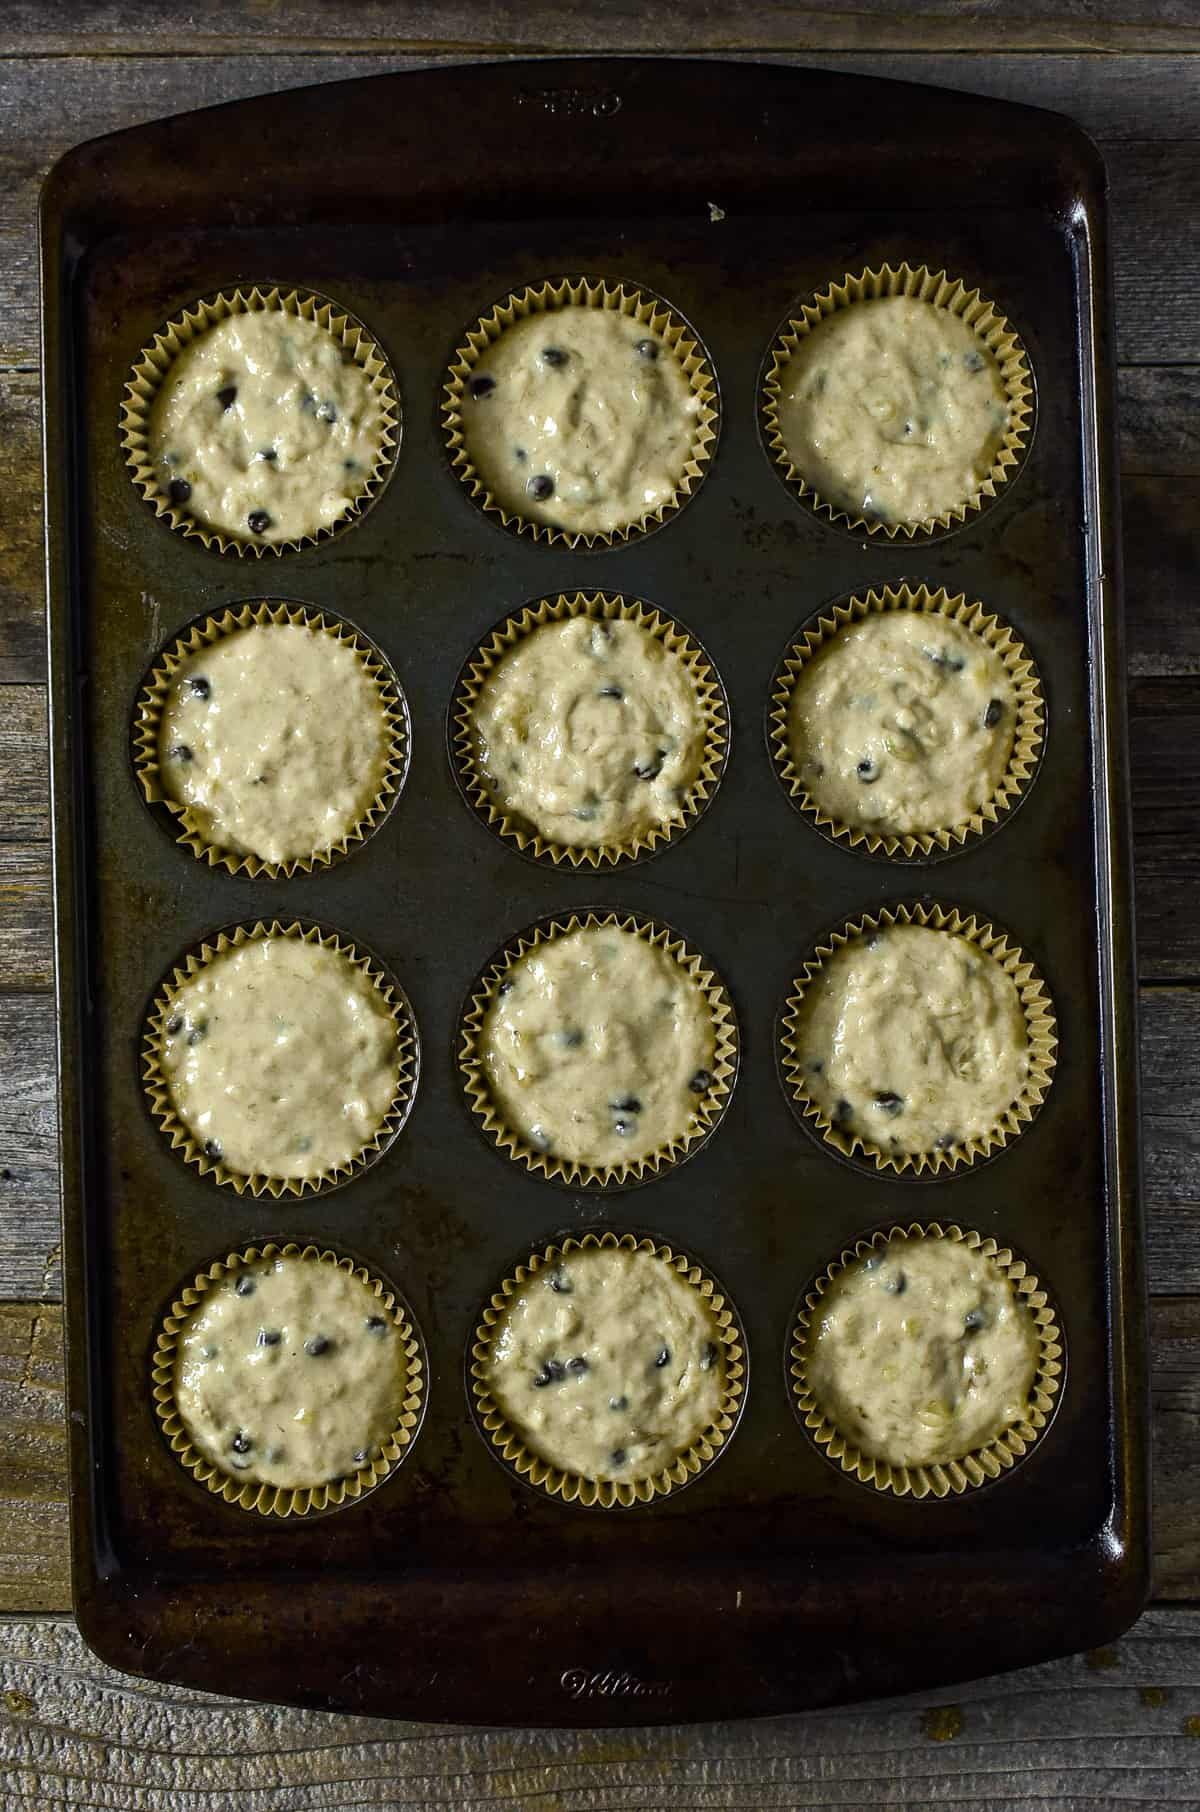 Pre-baked muffin batter in muffin pan.